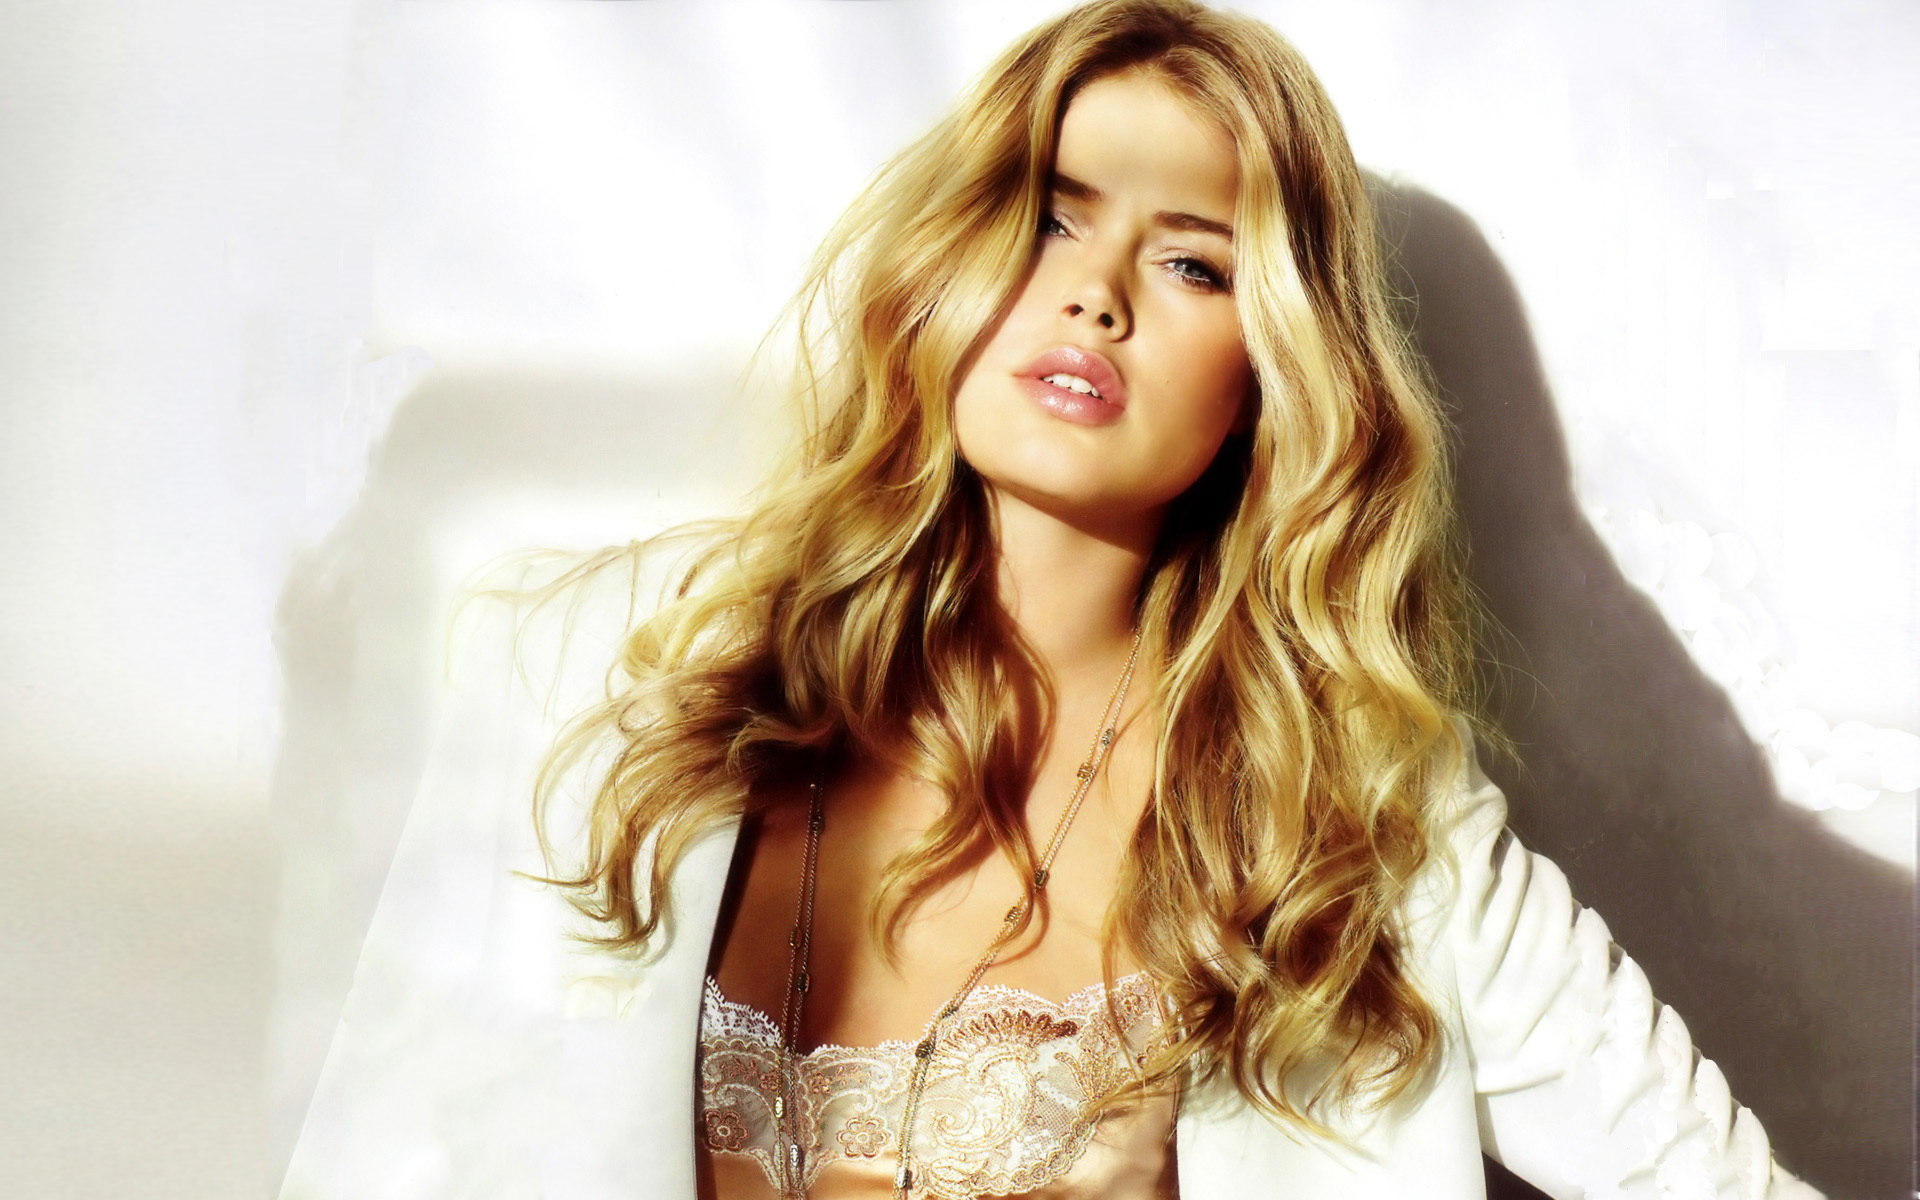 Photos Of Doutzen Kroes